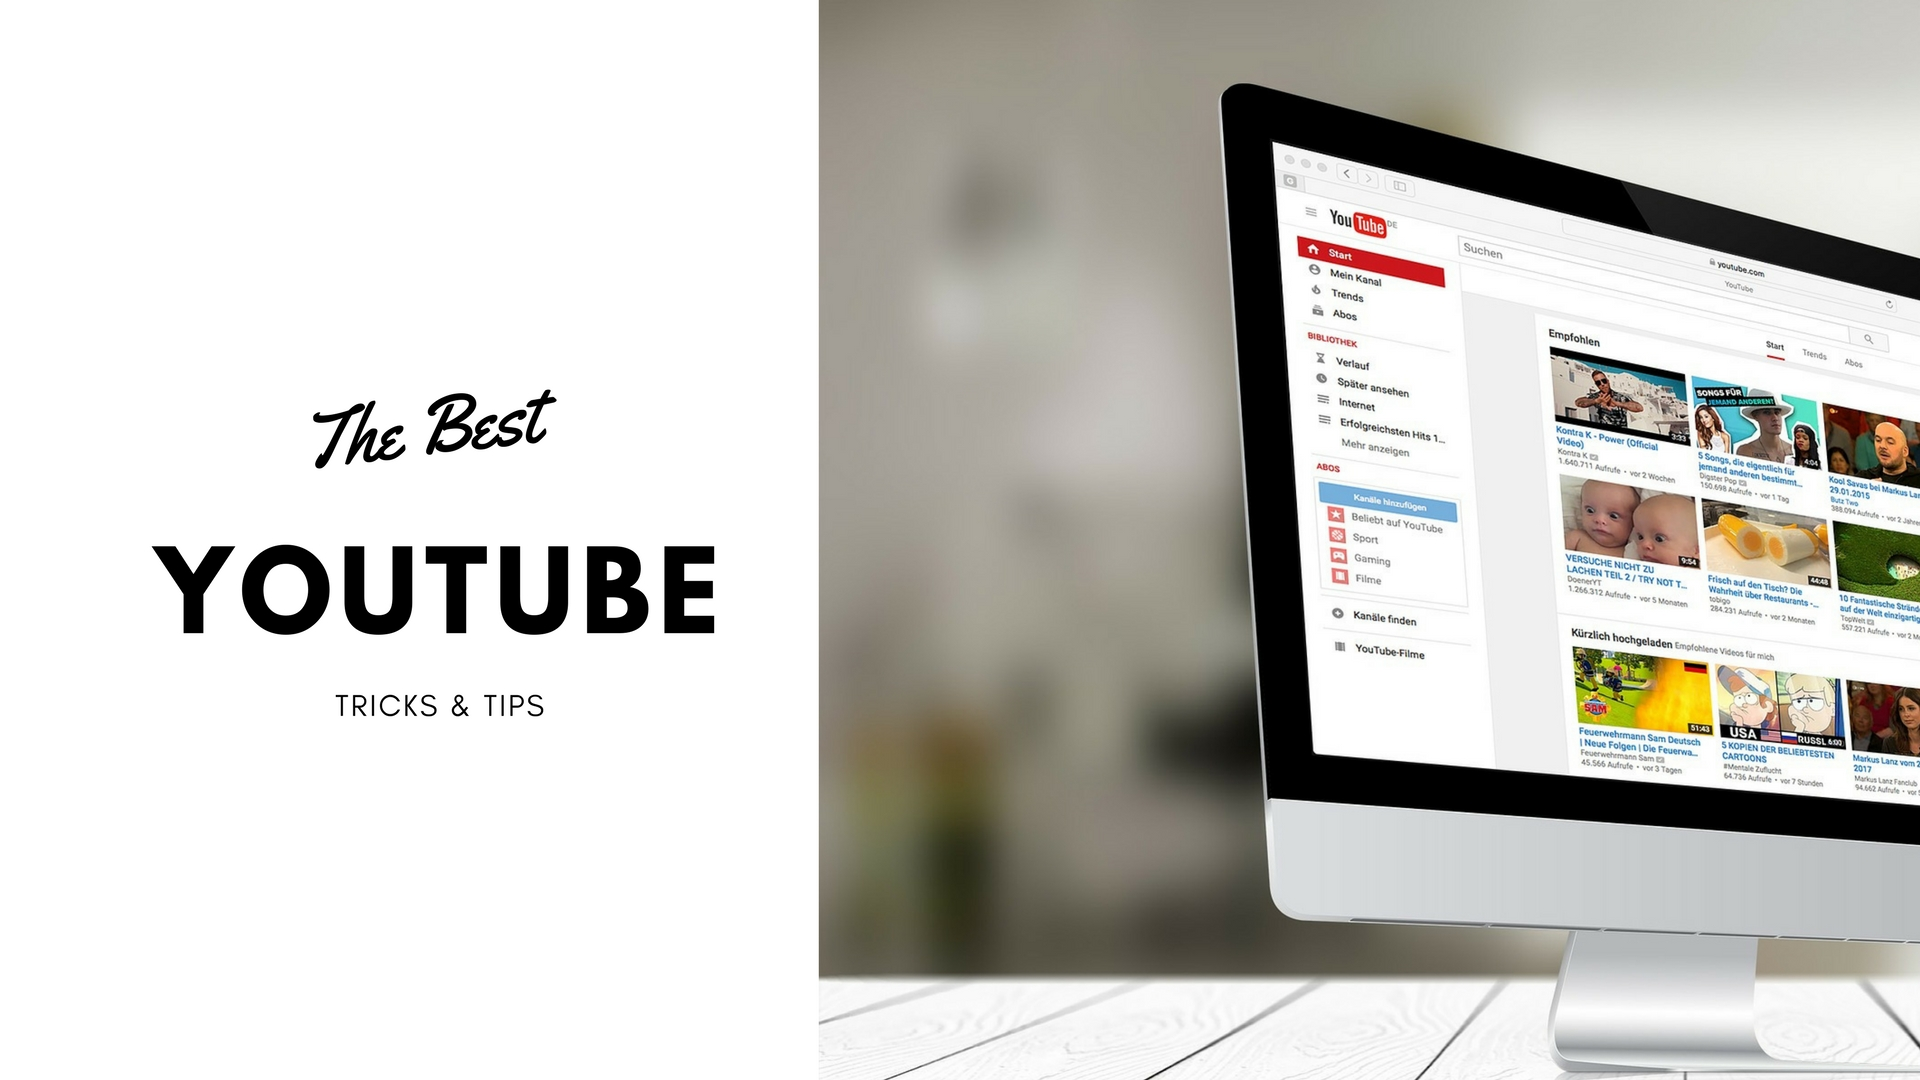 Youtube Tricks - How to download Youtube videos & more - Life Hacks